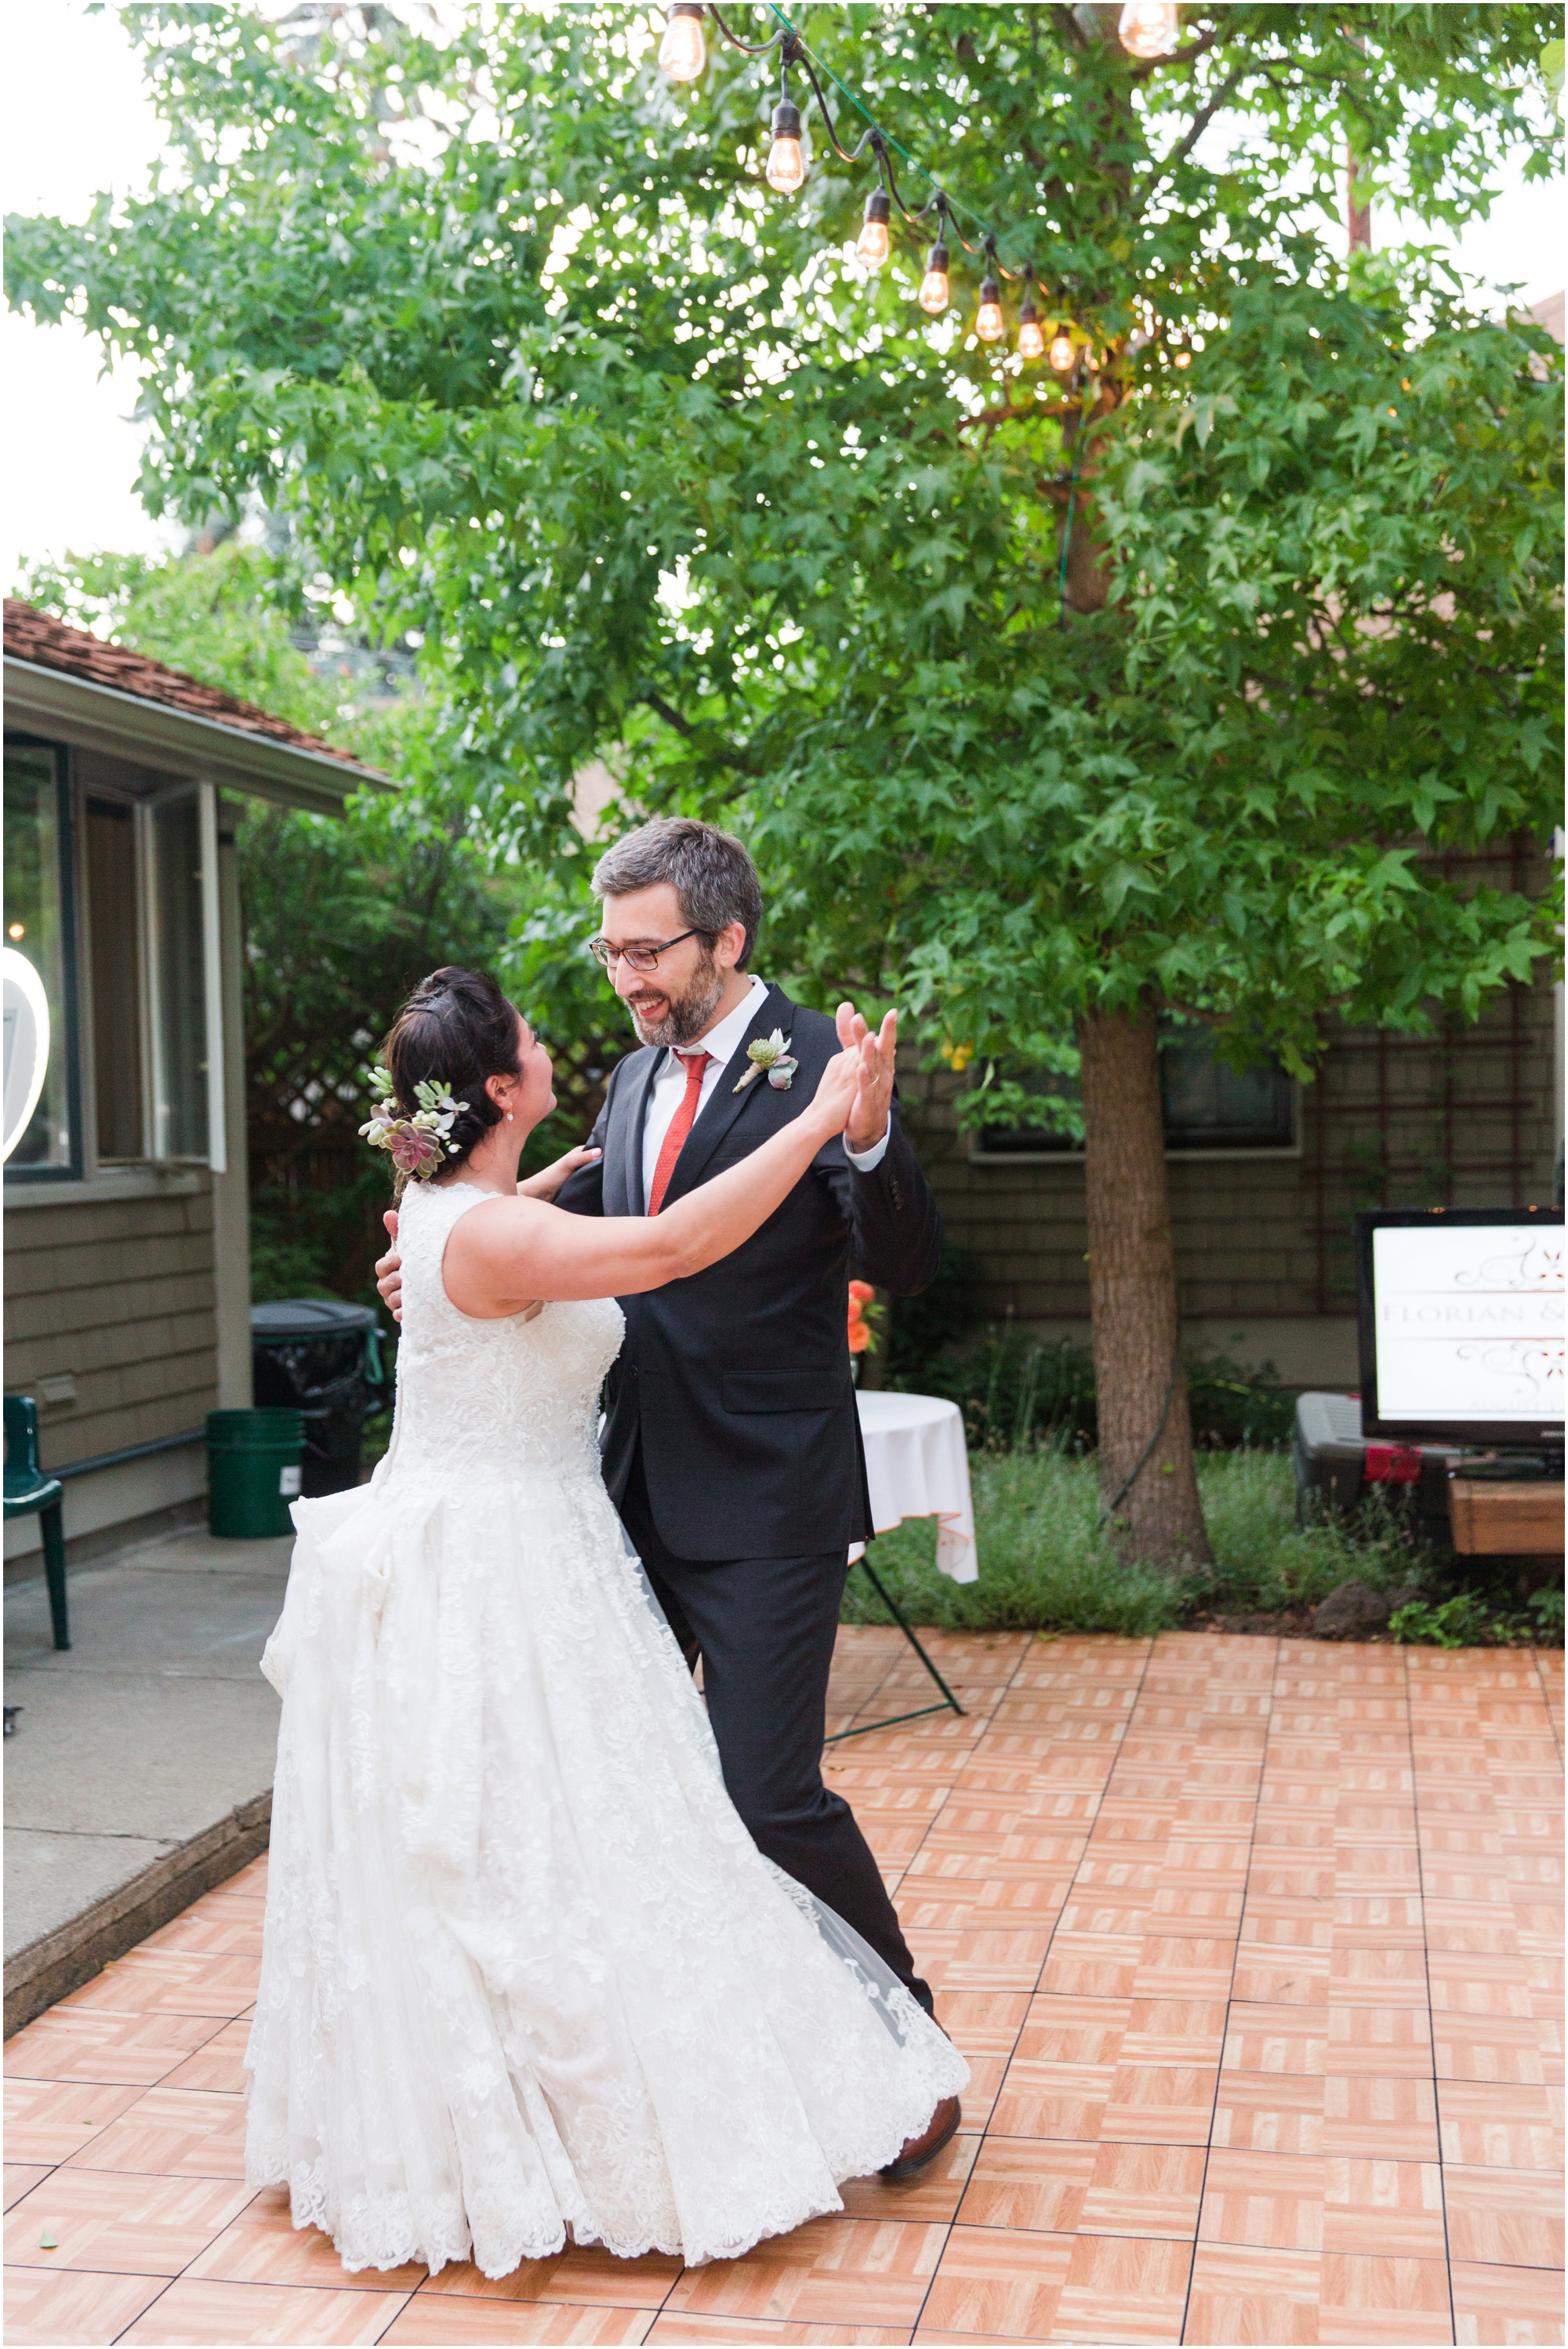 Garden wedding in Ellensburg, WA. Photos by Briana Calderon Photography based in the greater Seattle-Tacoma Area._1367.jpg